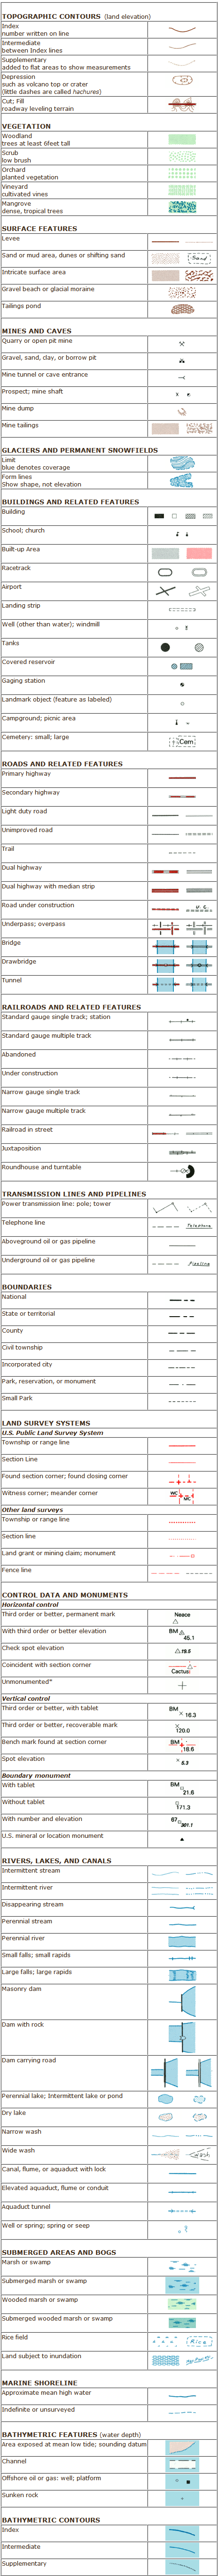 Common Map Symbols Used in Surveying